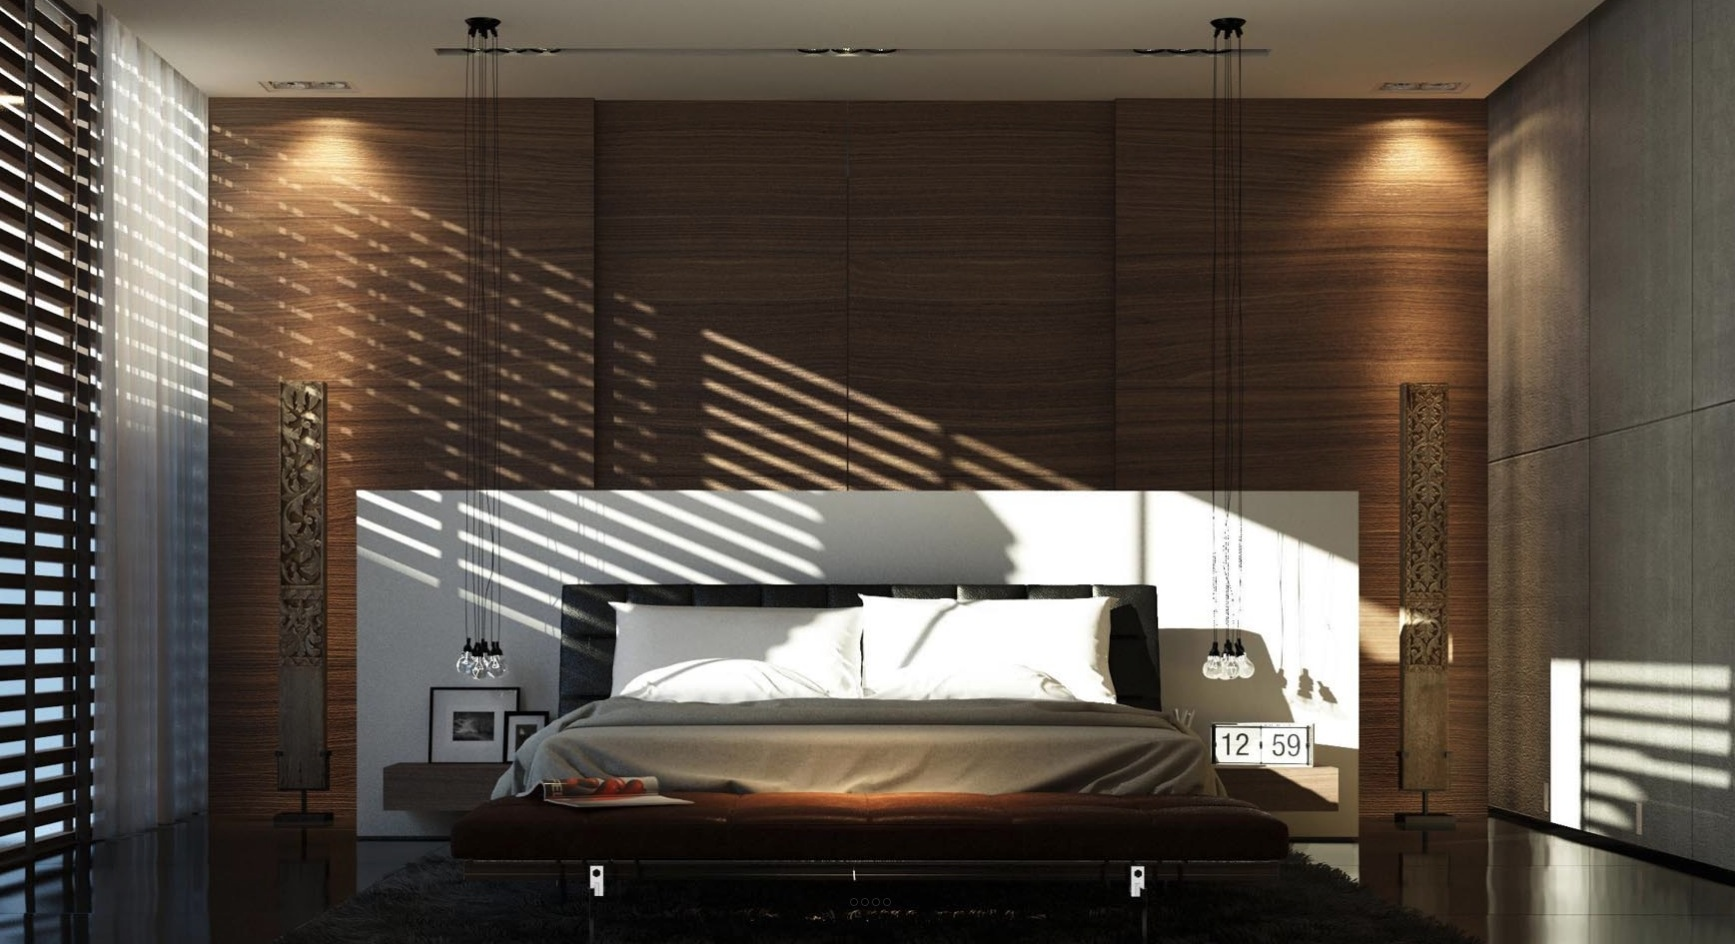 21 Cool Bedrooms for Clean and Simple Design Inspiration on Cool Bedroom Ideas  id=65150